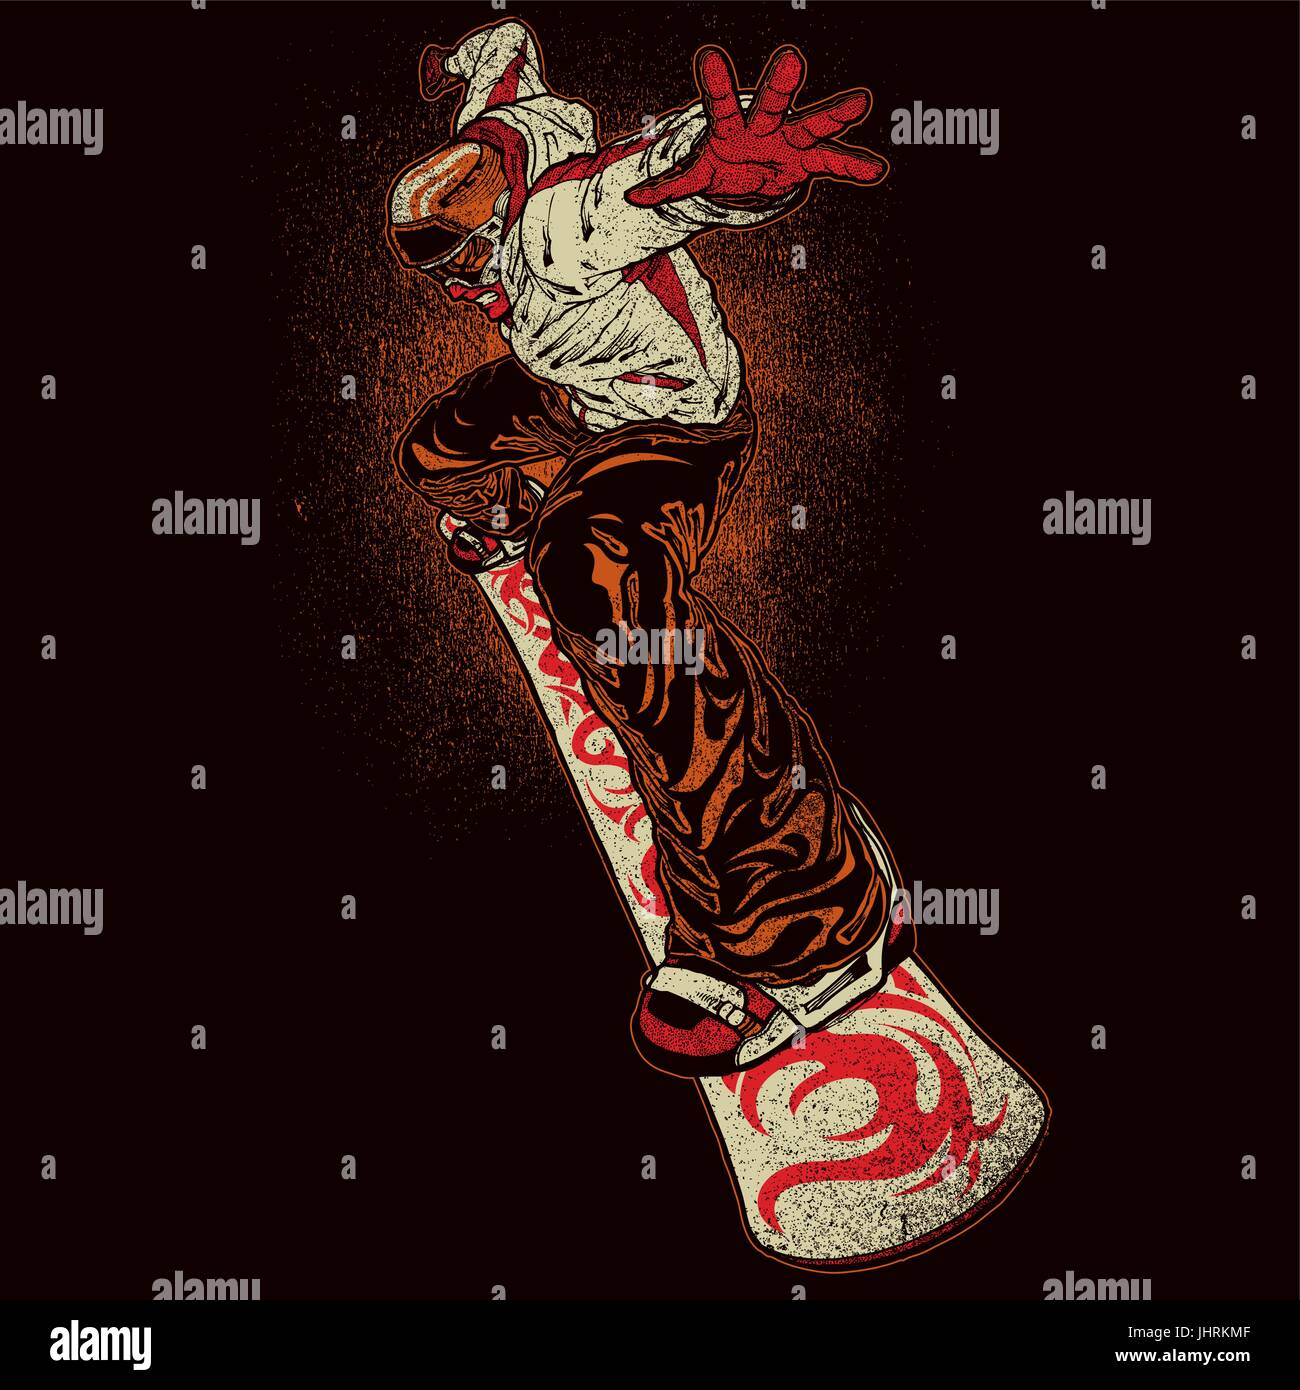 Illustration of angry snowboarder on dark background Stock Vector